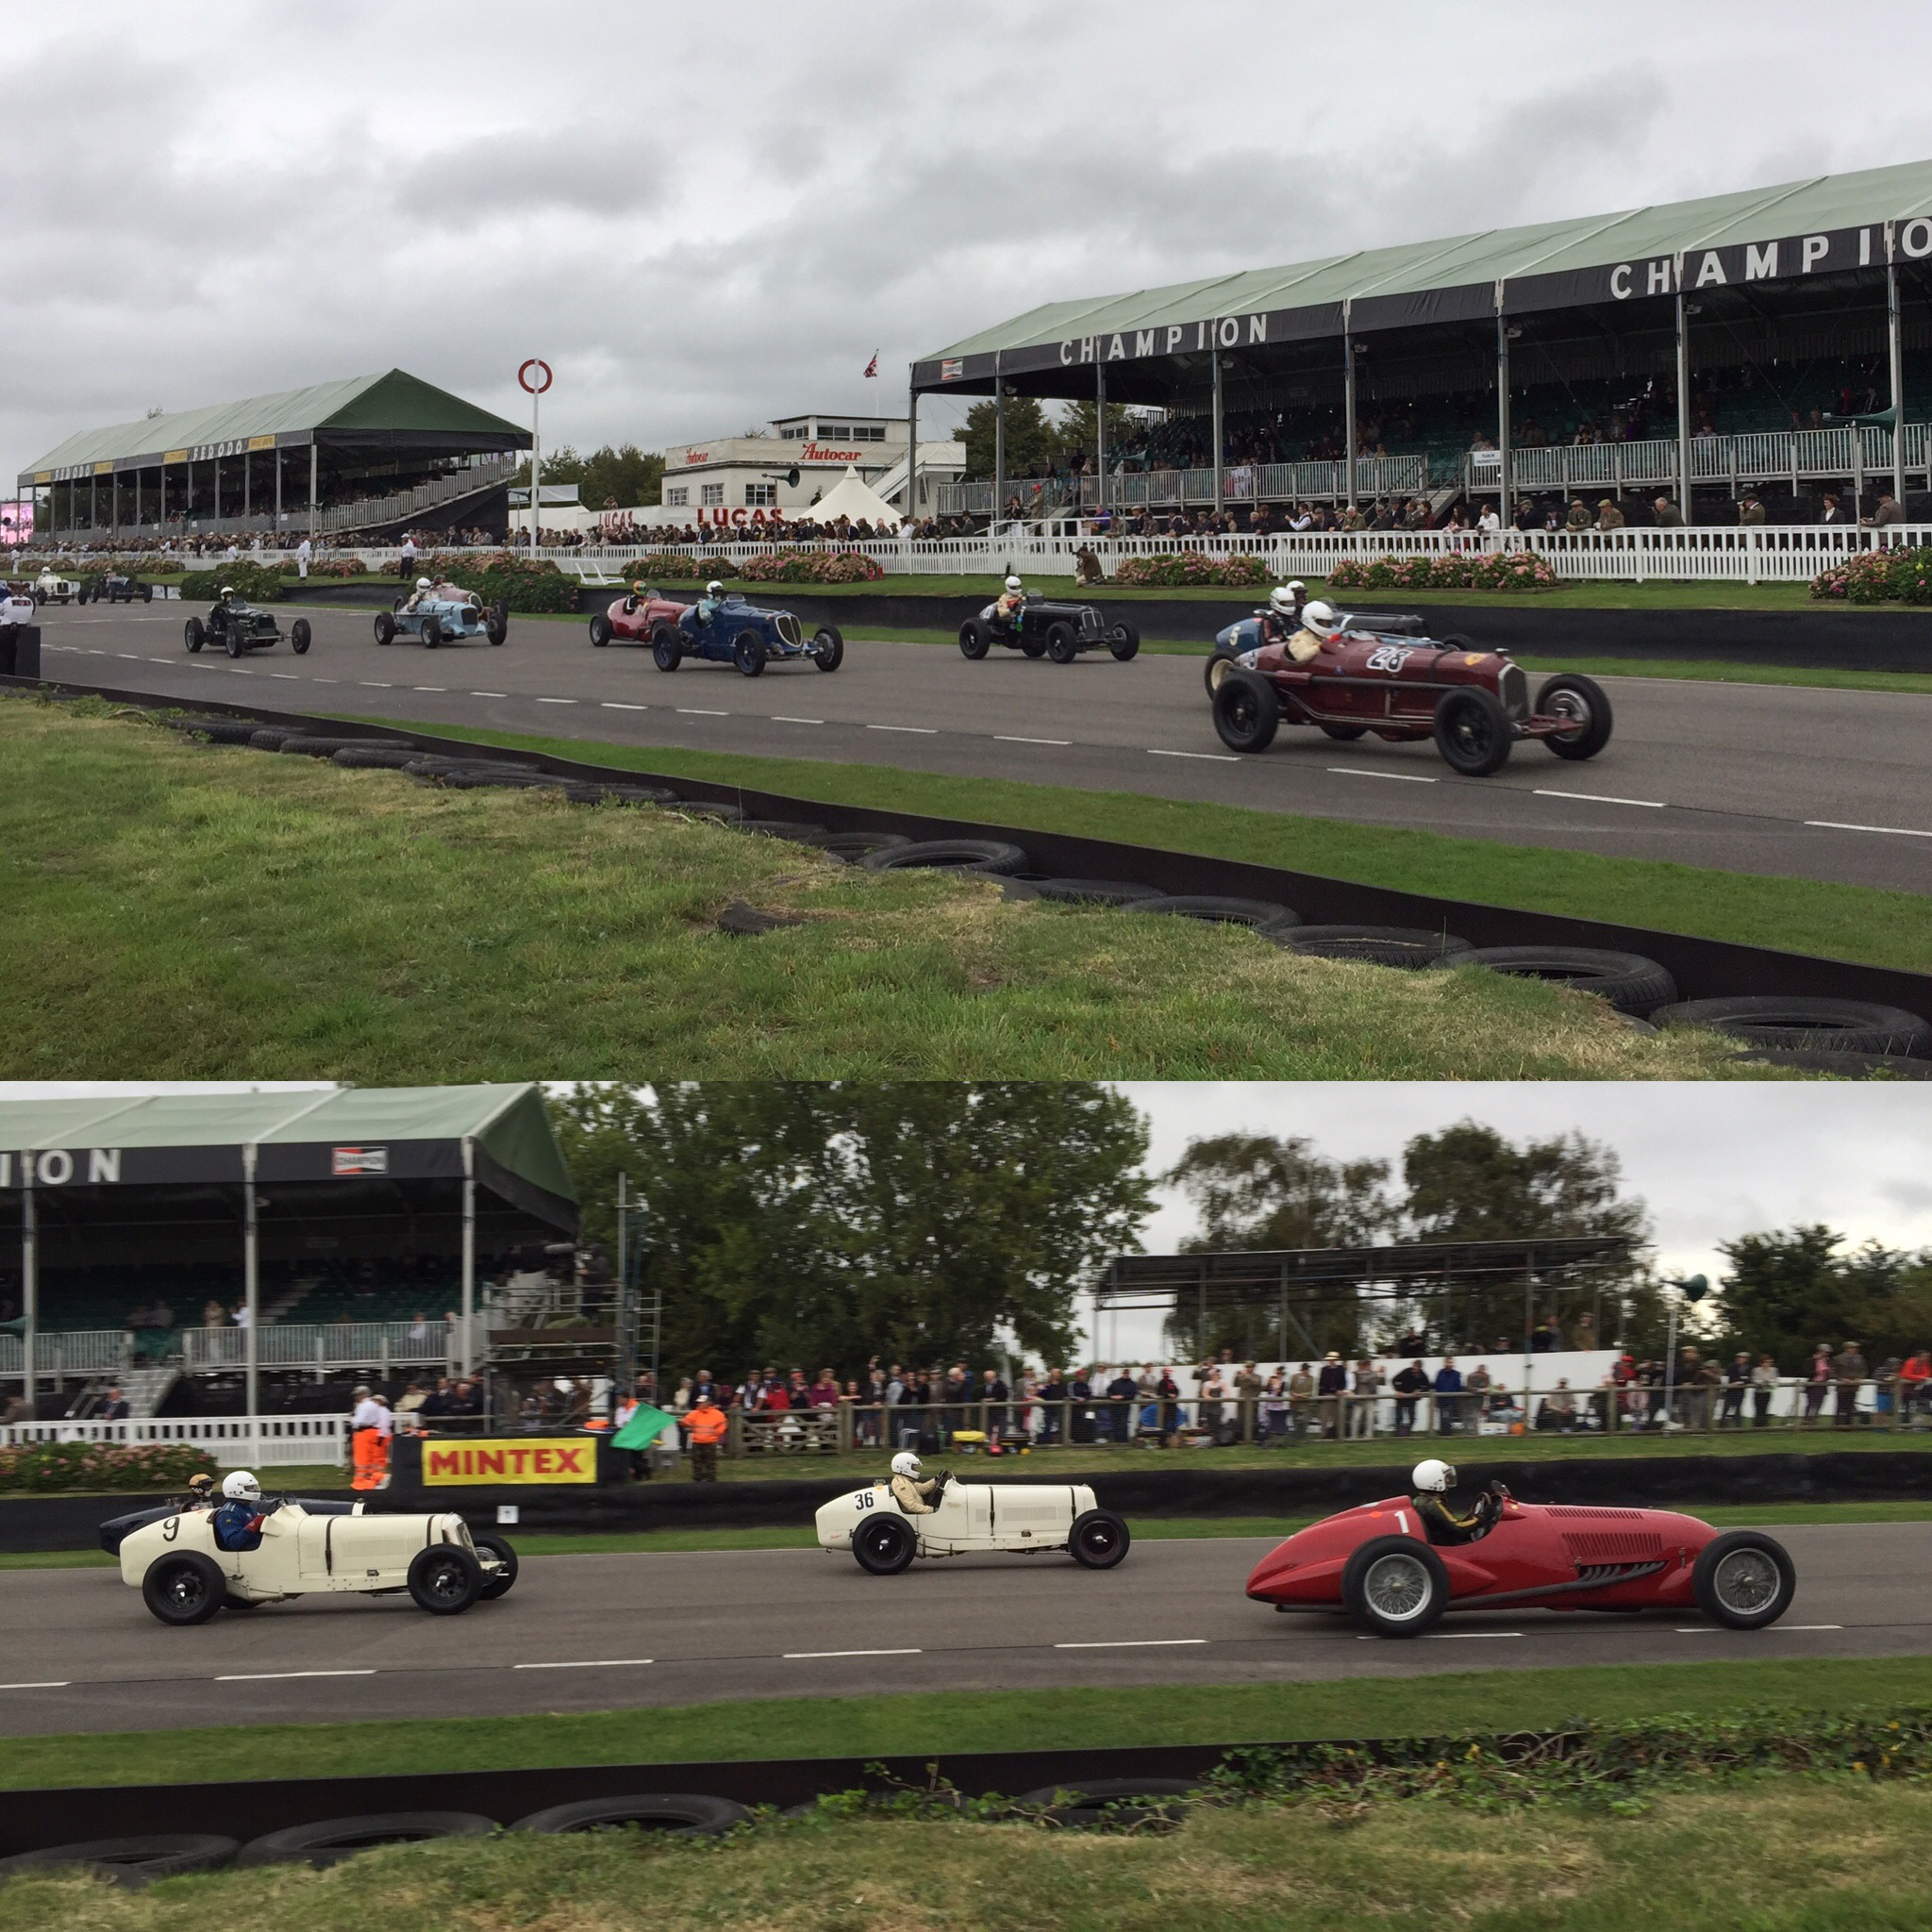 2016 Goodwood Revival Vintage Race Cars